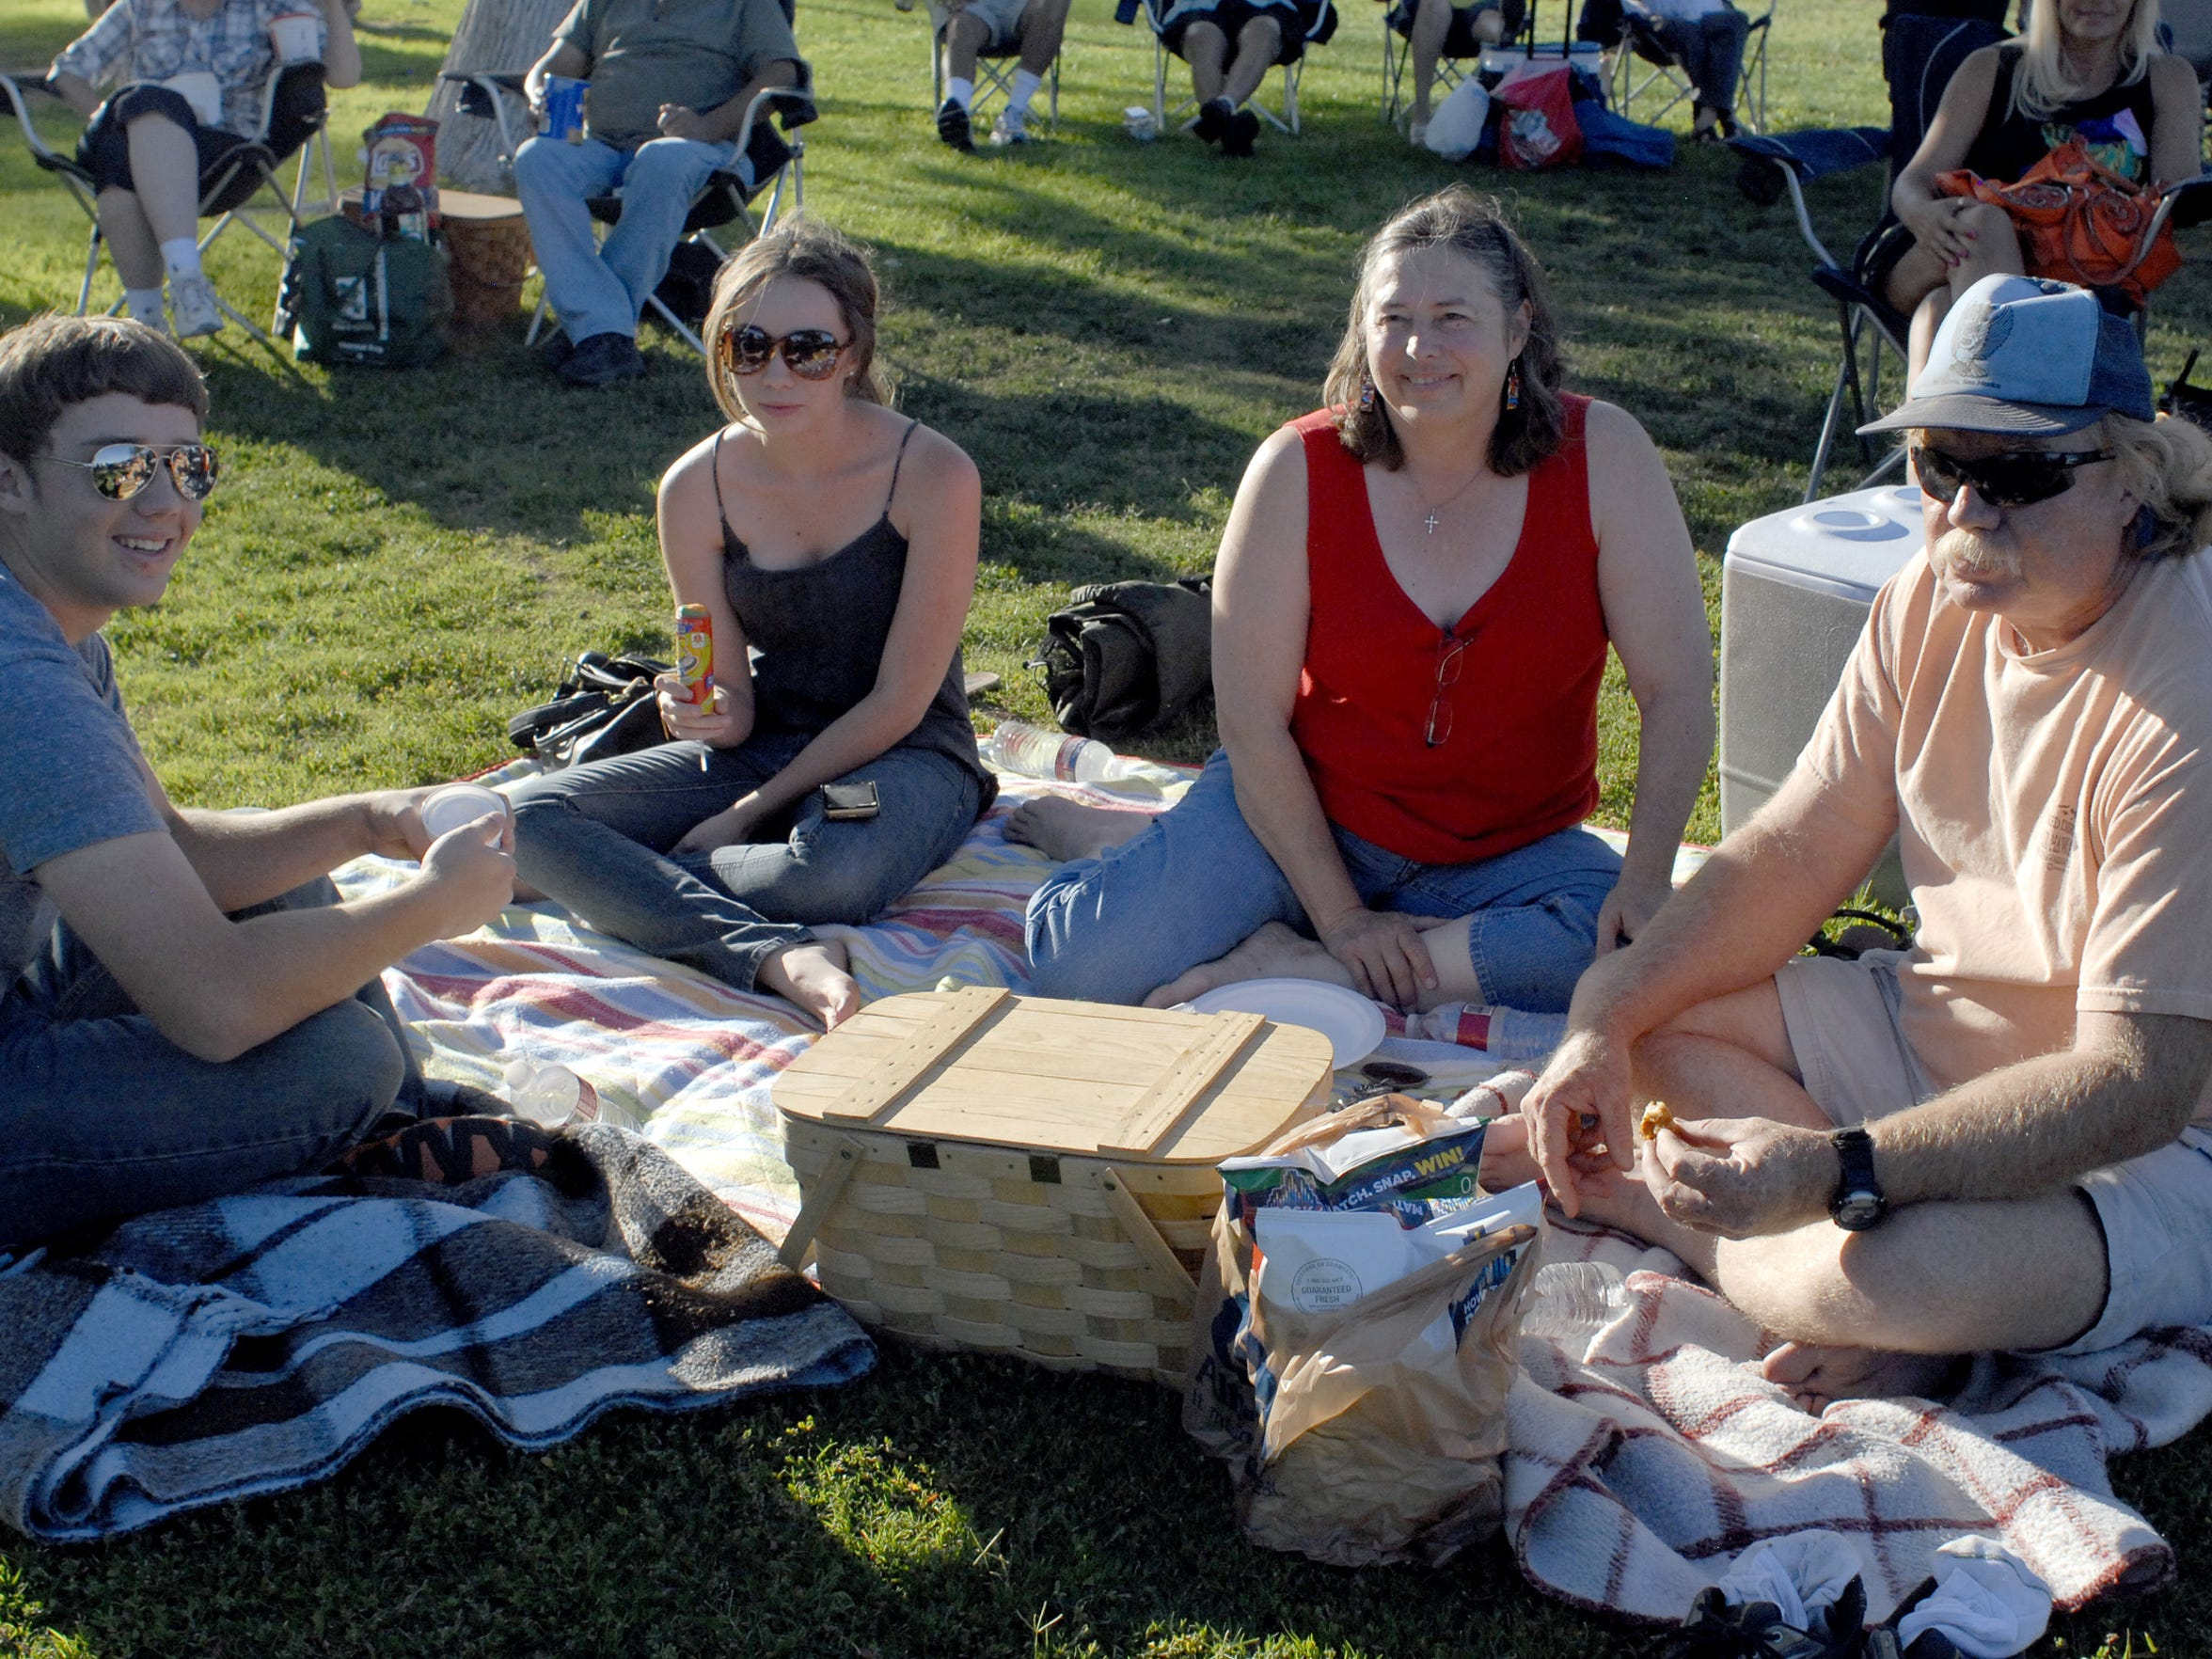 Matt, Kim, Ann and Pete Bellows prepare for a picnic and an evening concert at Apodaca Park, part of the the city's summer Music in the Park Series. This year, the series will be presented each Sunday throughout the summer starting at 7 p.m. at Young Park, 1905 E. Nevada Ave.